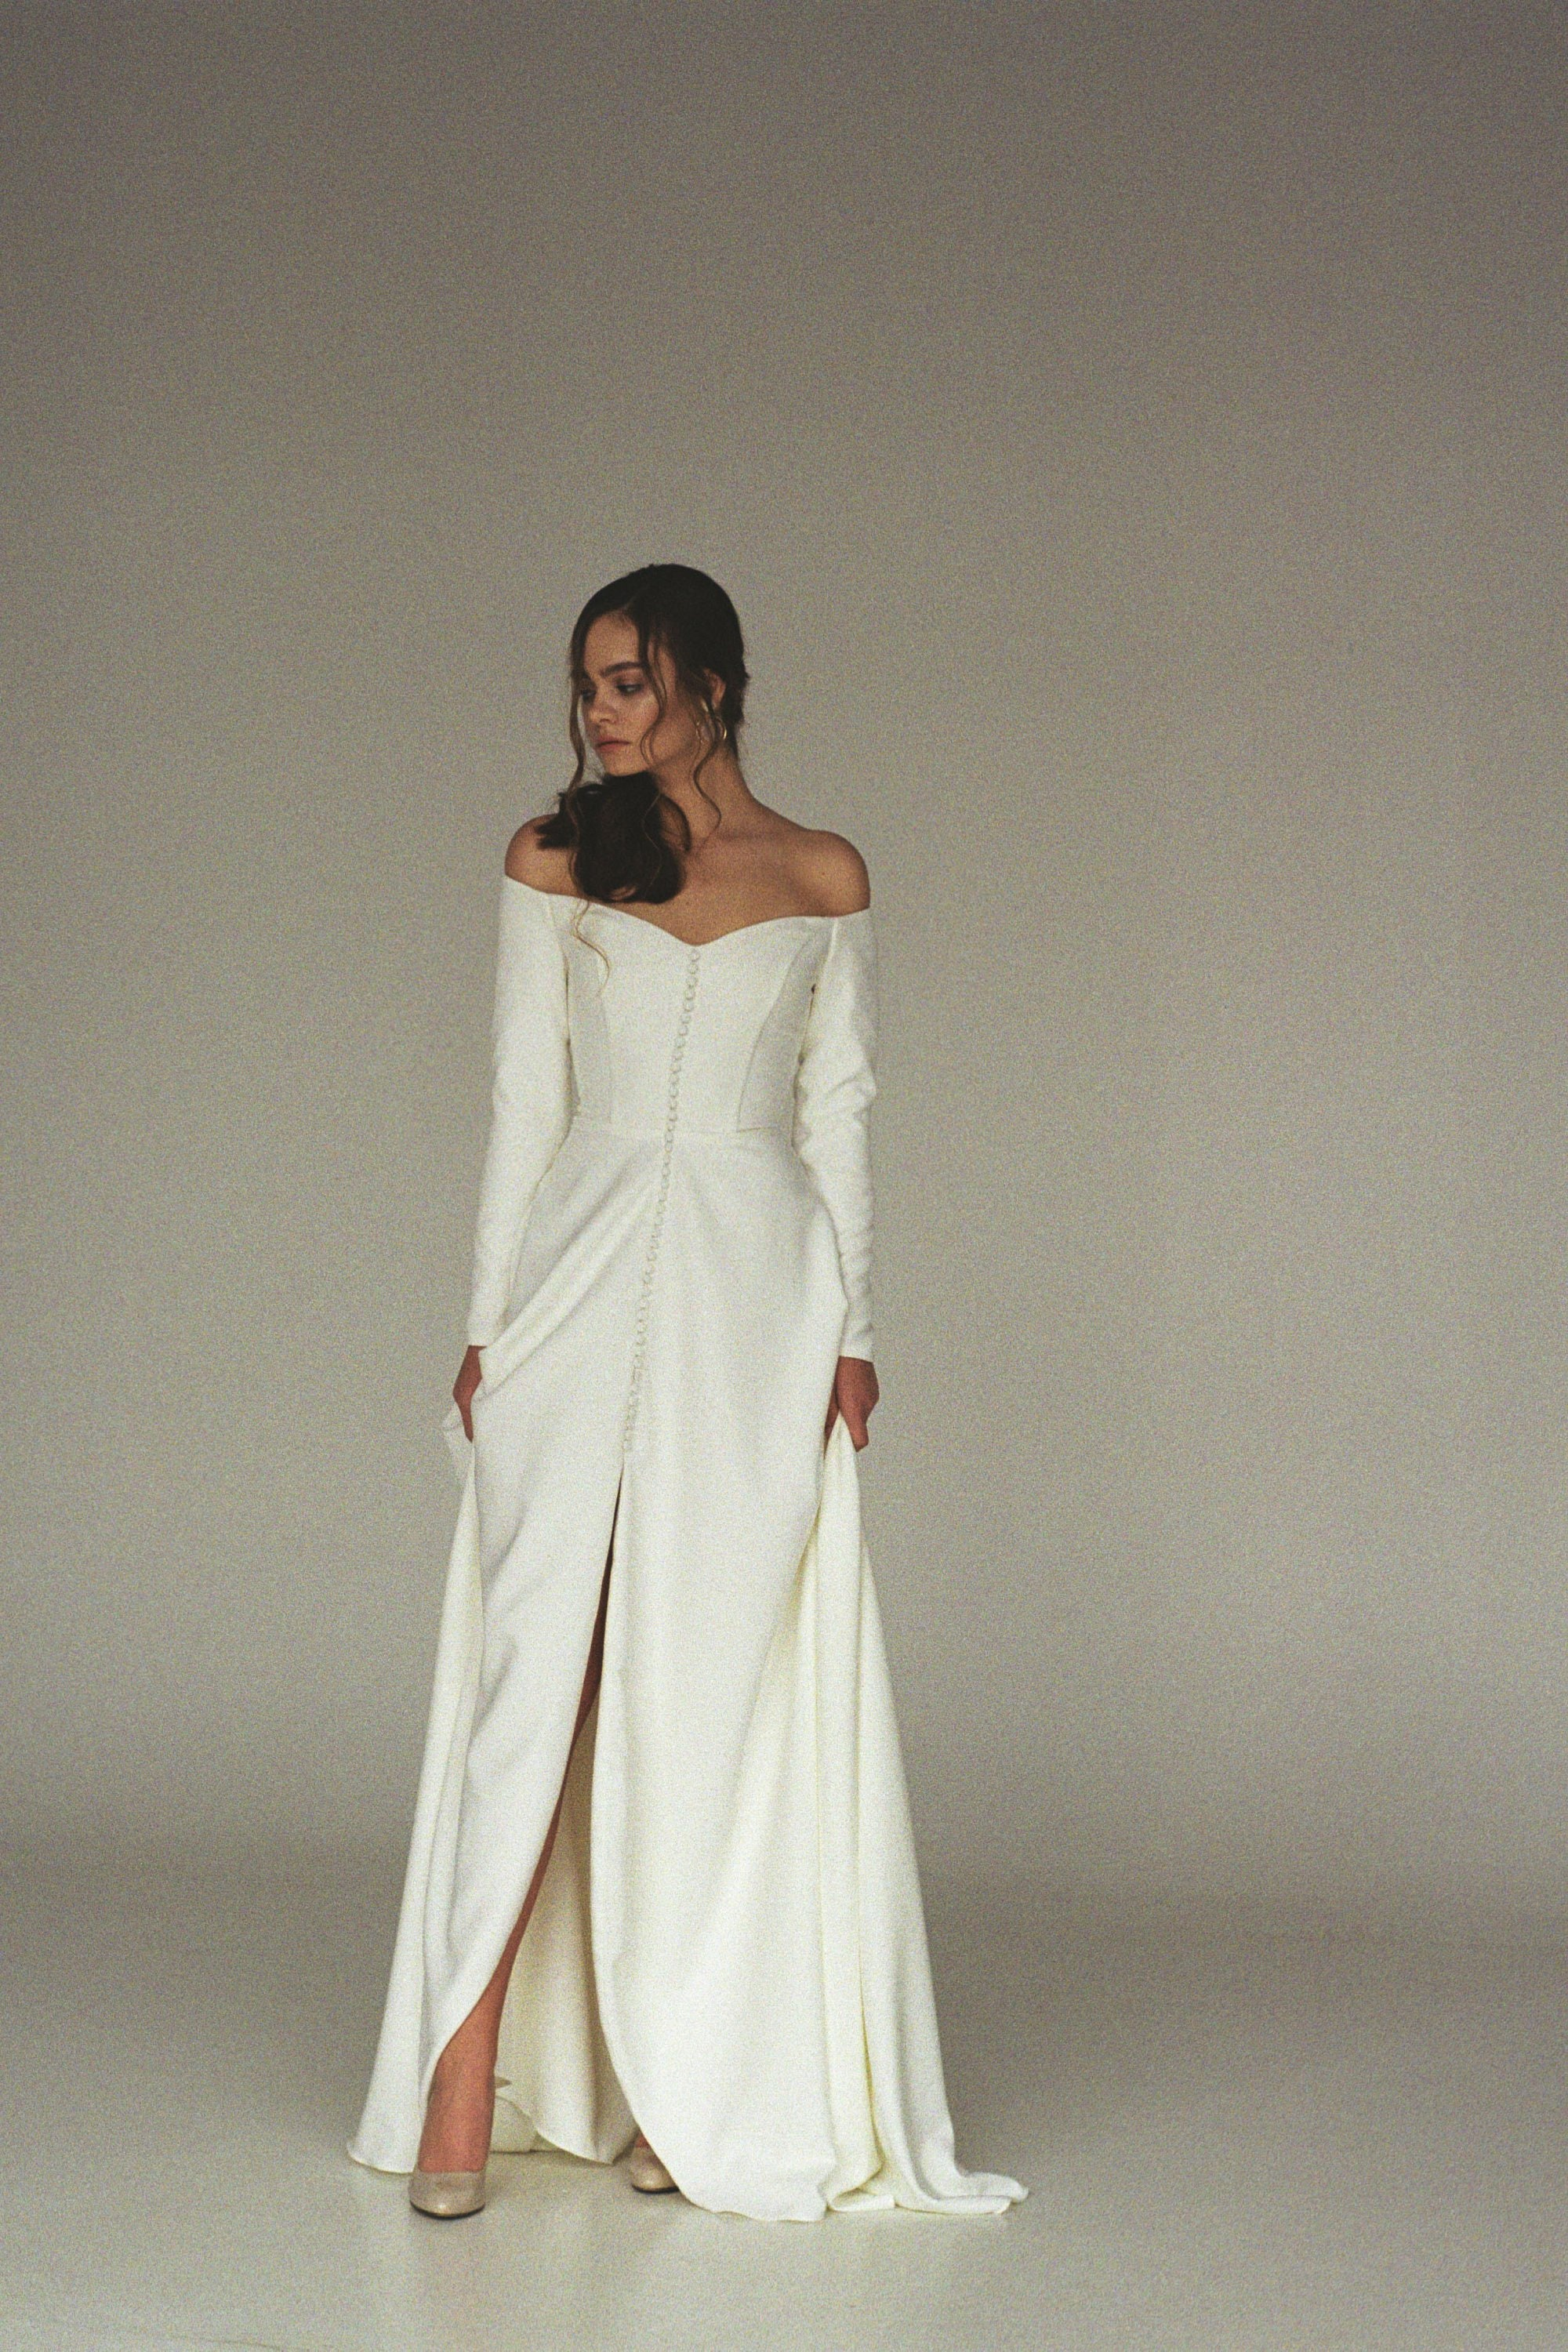 Modern off-shoulder wedding dress with a